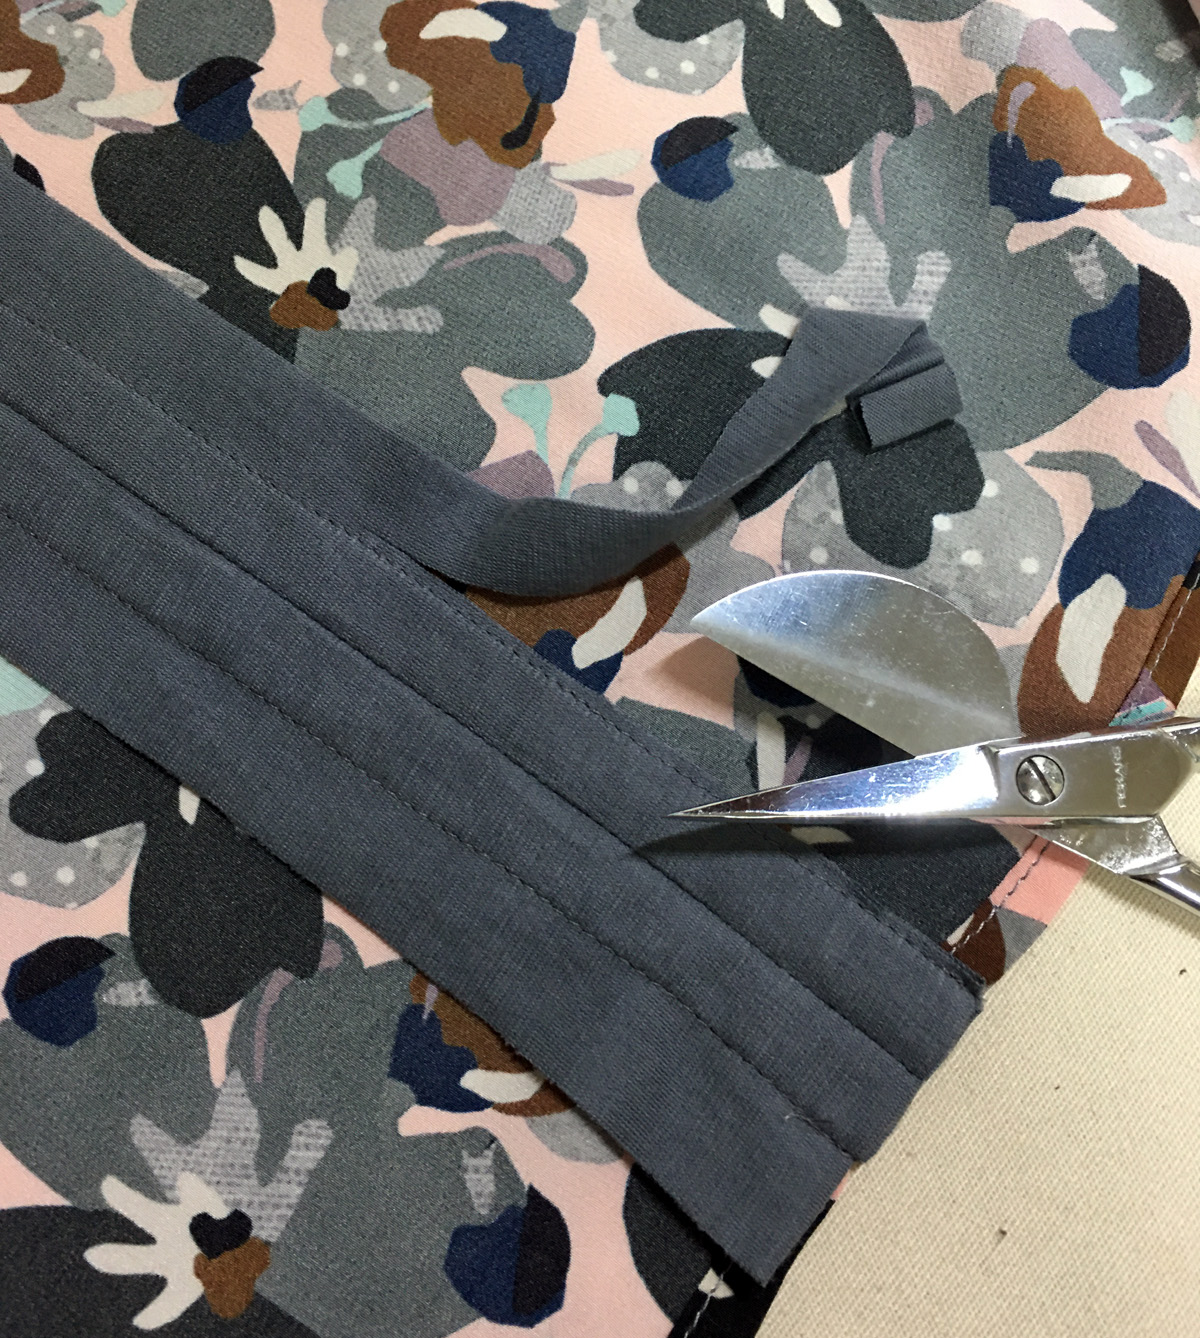 Use ThreadsMagazine.com to find out how to cut close to sewn edges with duckbill scissors